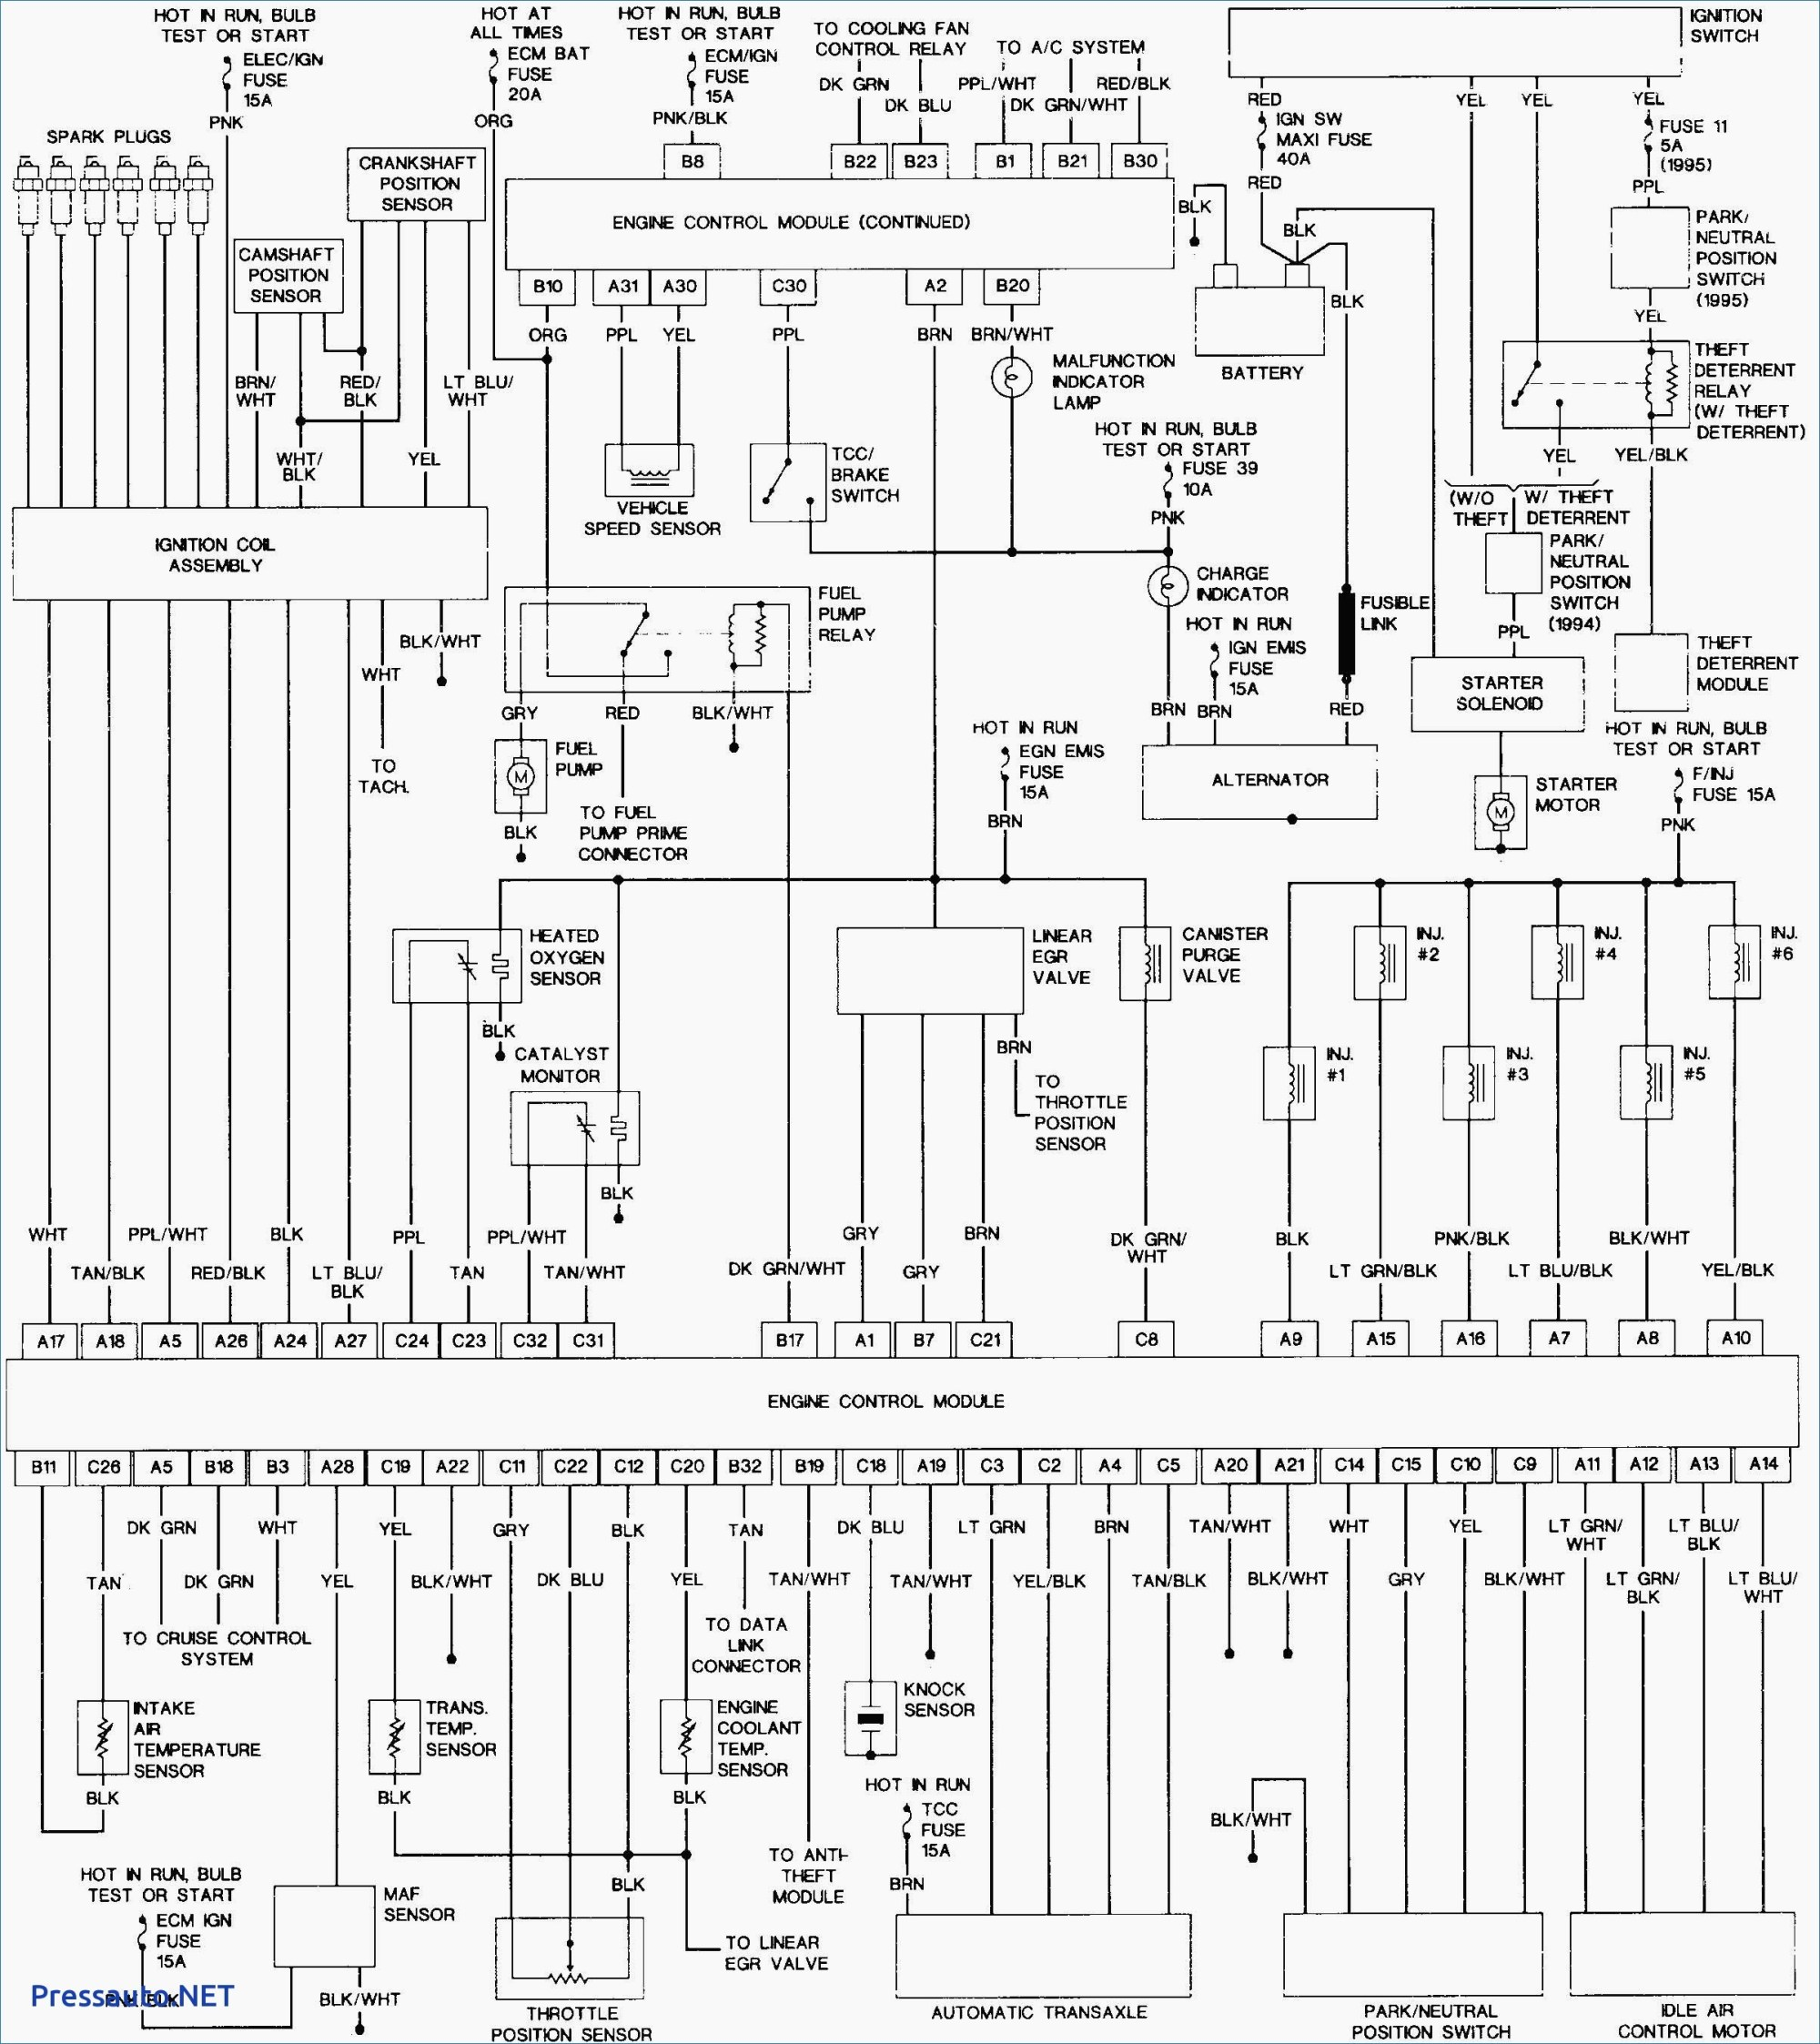 hight resolution of 2001 tdi engine diagram wiring diagram used vw mk4 fuse diagram 2001 jetta engine diagram wiring